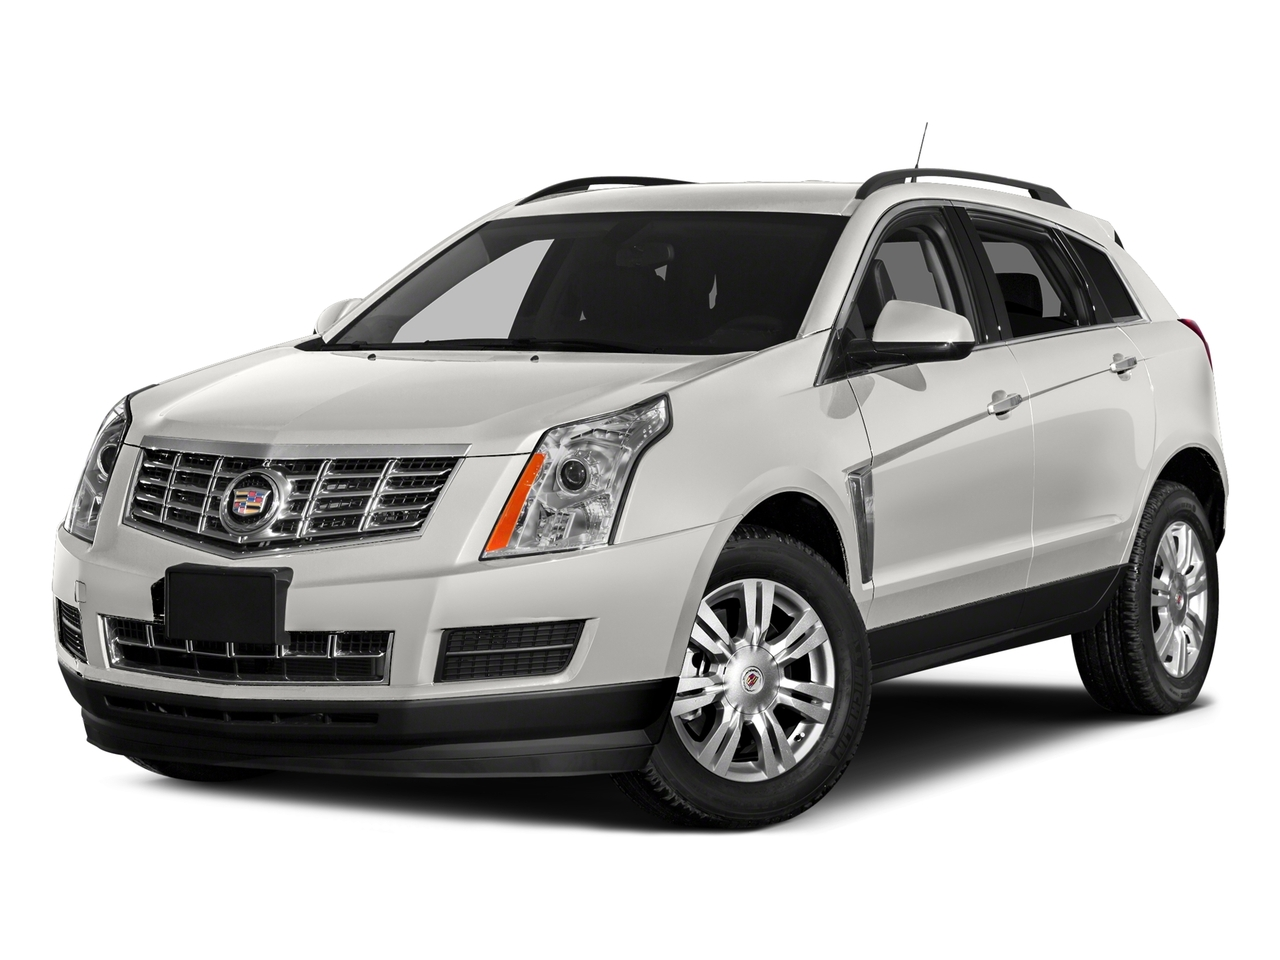 2016 Cadillac SRX FWD 4DR LUXURY COLLECTION Sport Utility  Concord NC